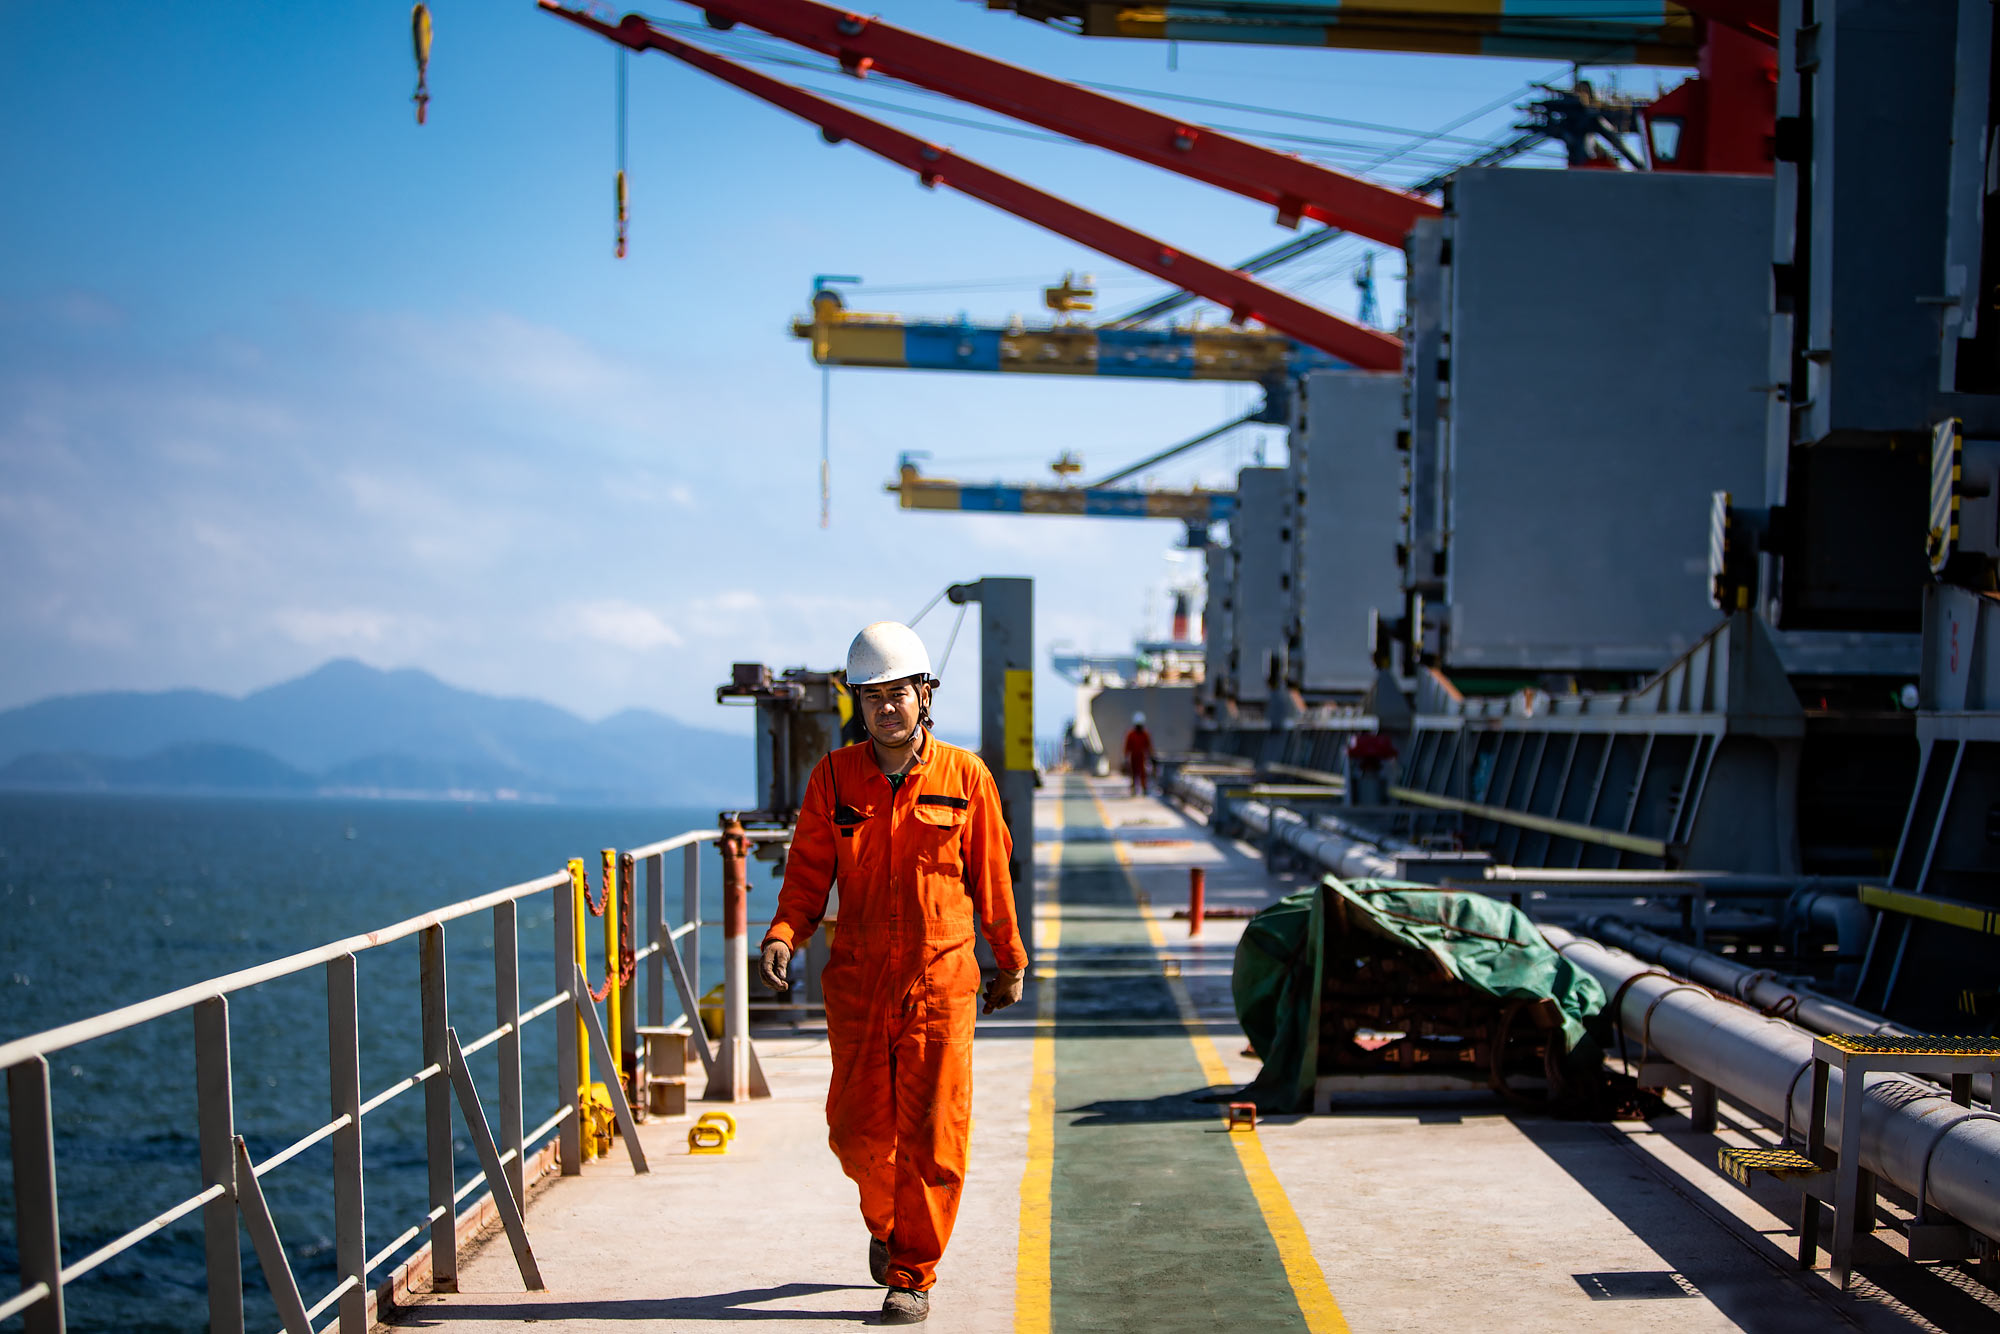 Dockworker walking beneath industrial cargo cranes |  Scott Gable industrial photographer